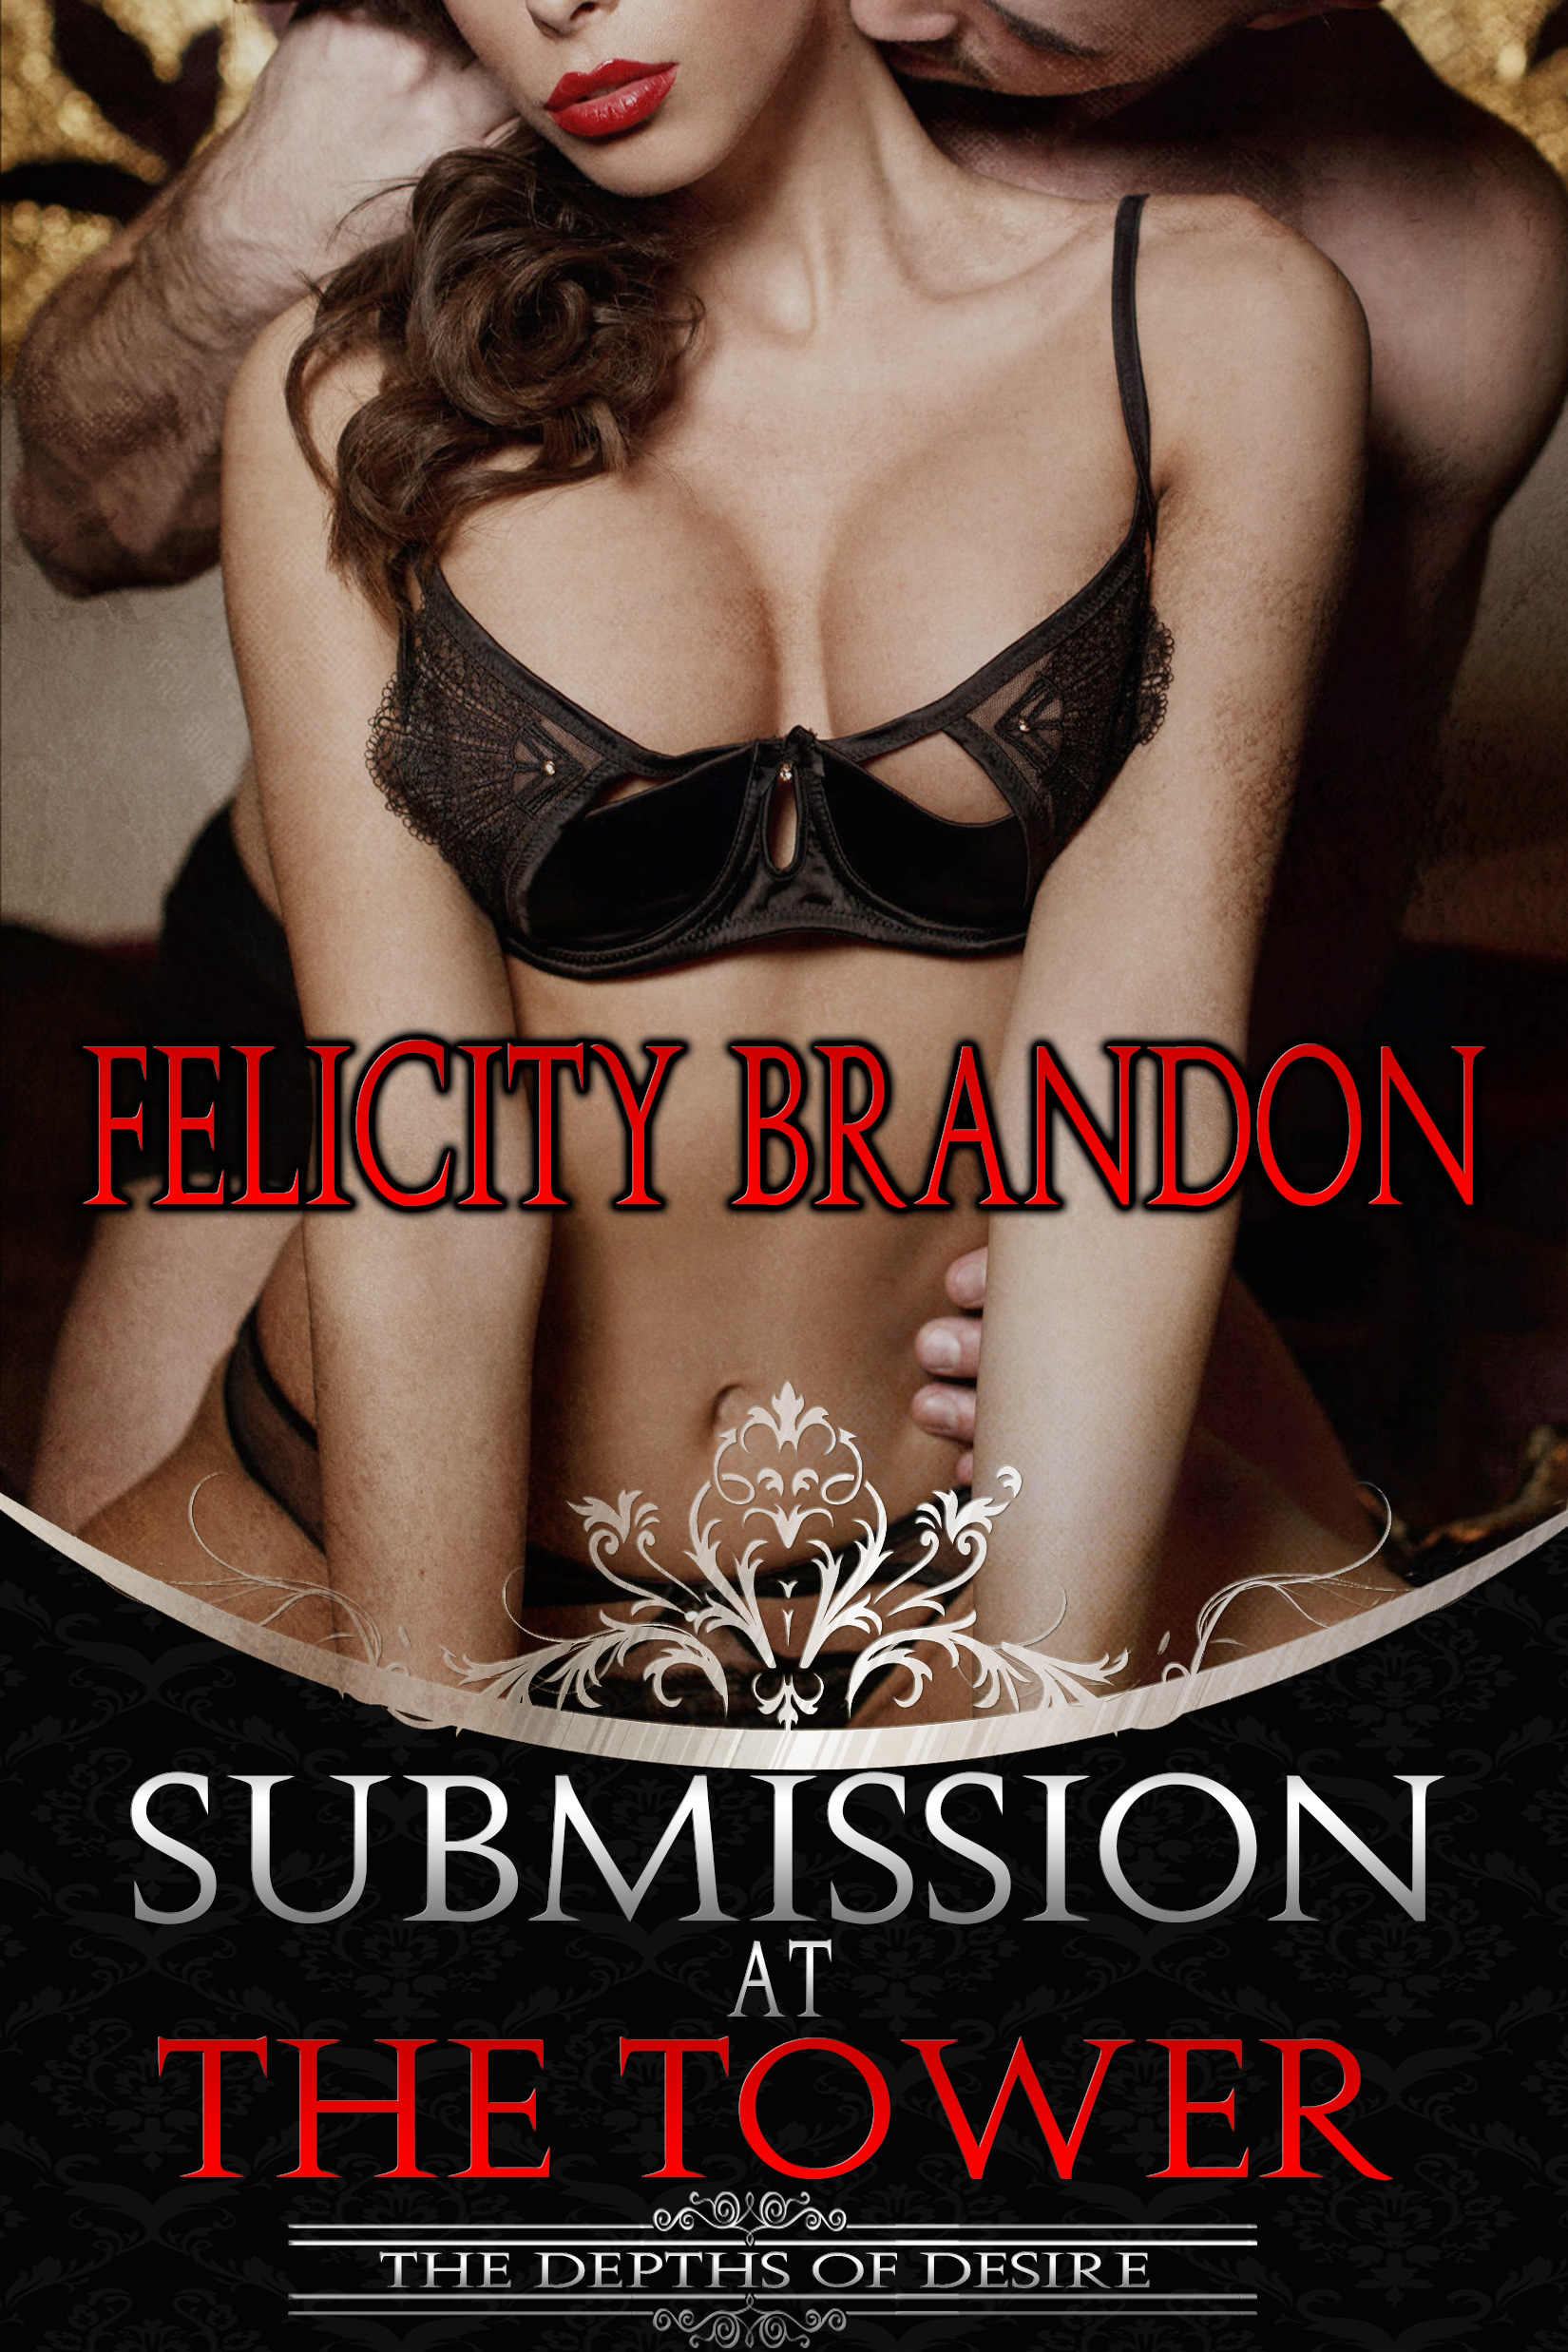 Submission at the Tower. You won't forget it.